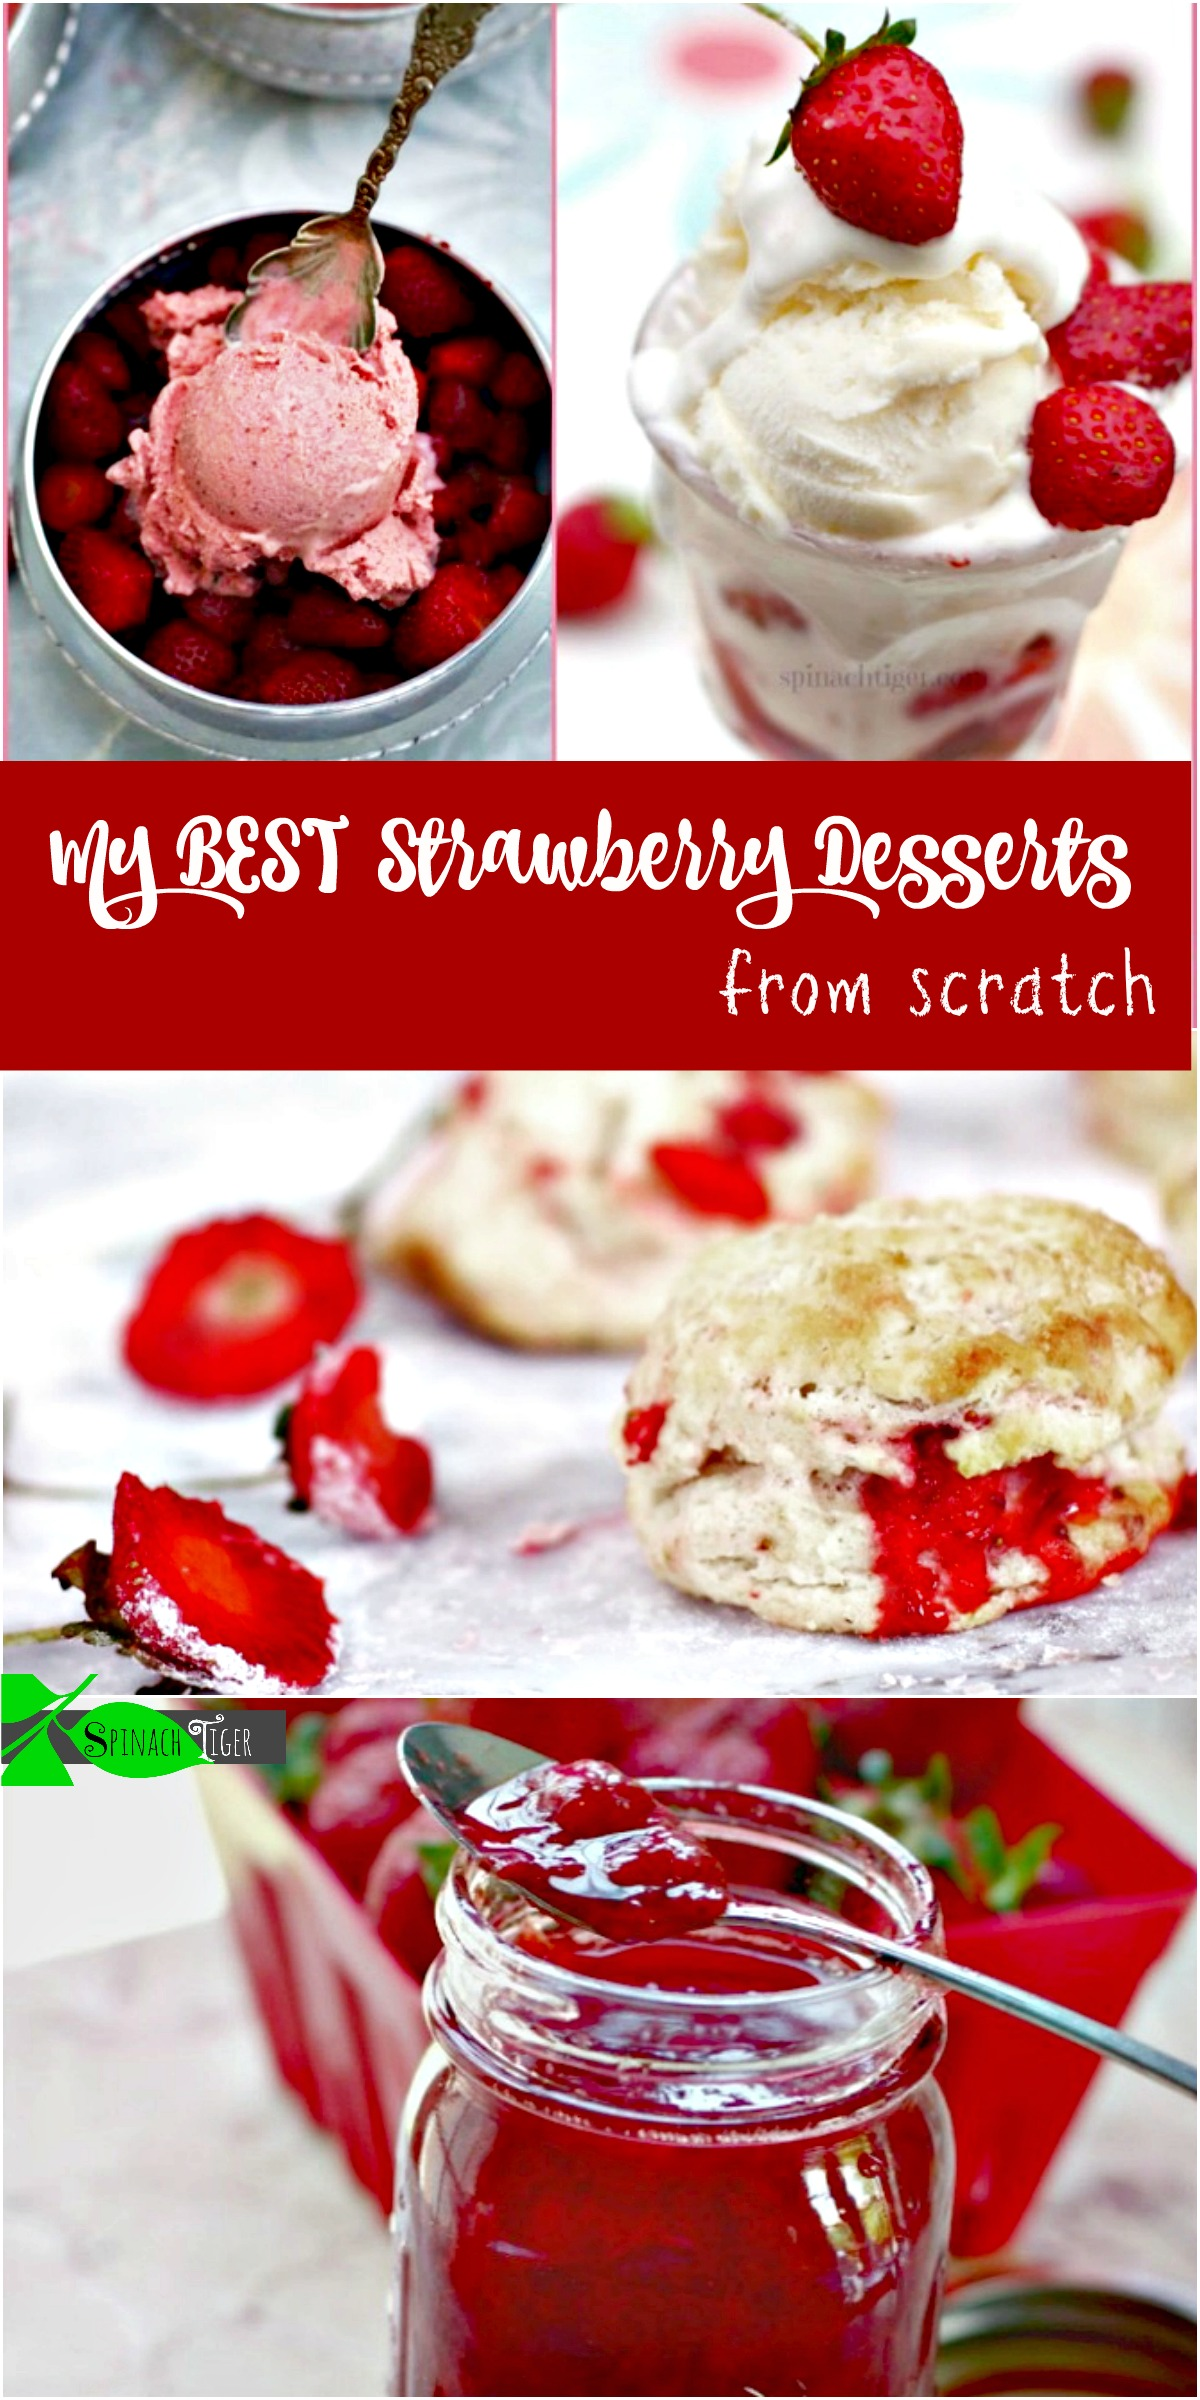 fresh strawberry dessert recipes from scratch from Spinach Tiger